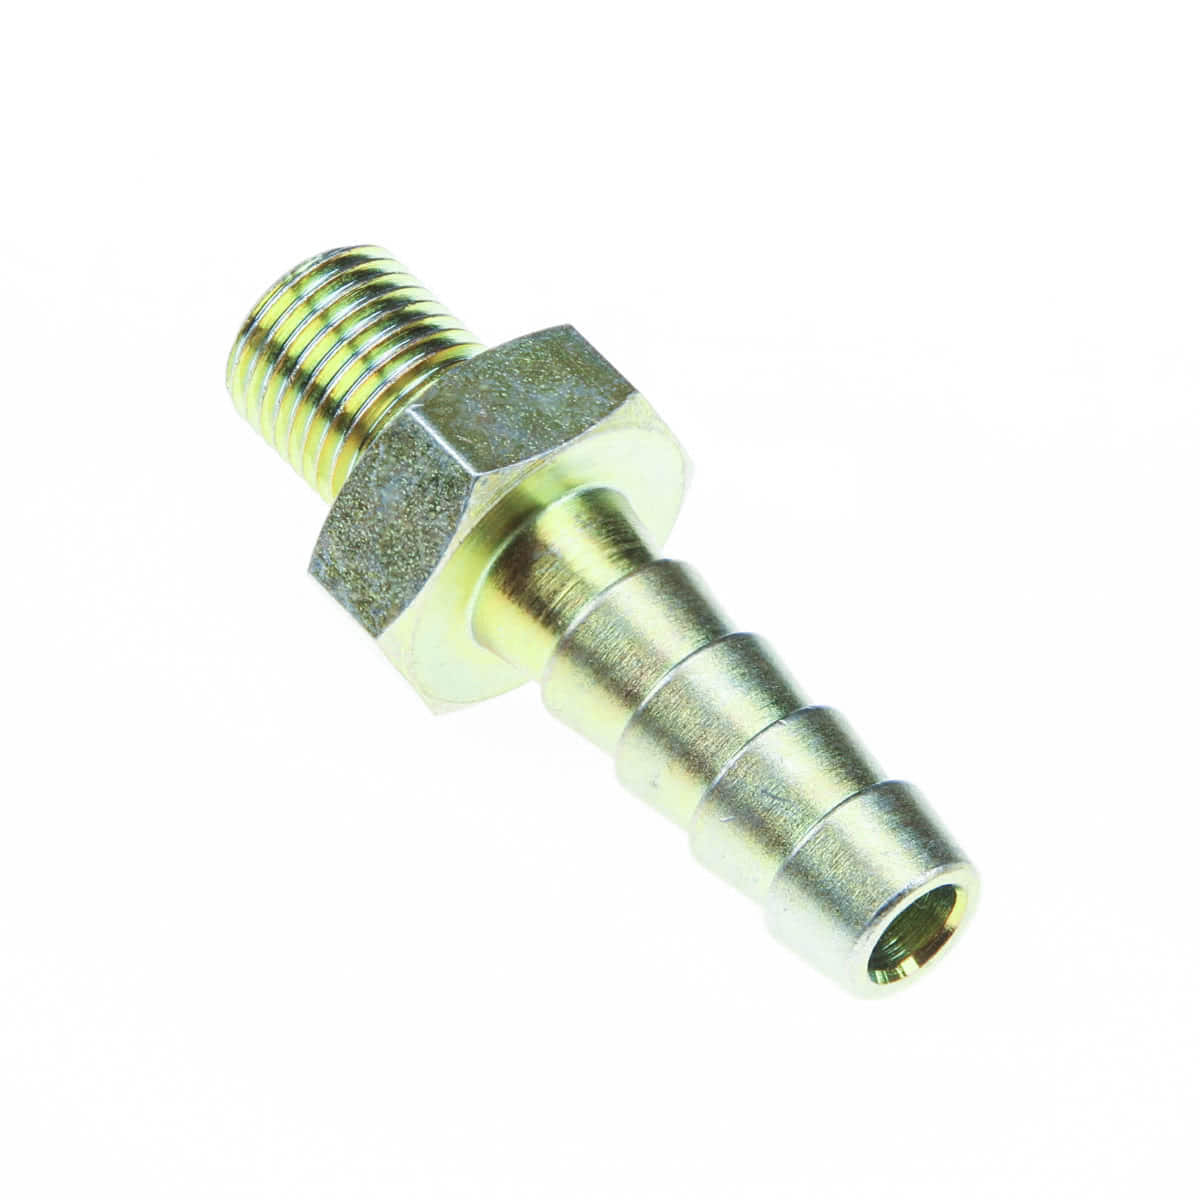 Walbro 9 mm Hose Barb Fitting 128-3014